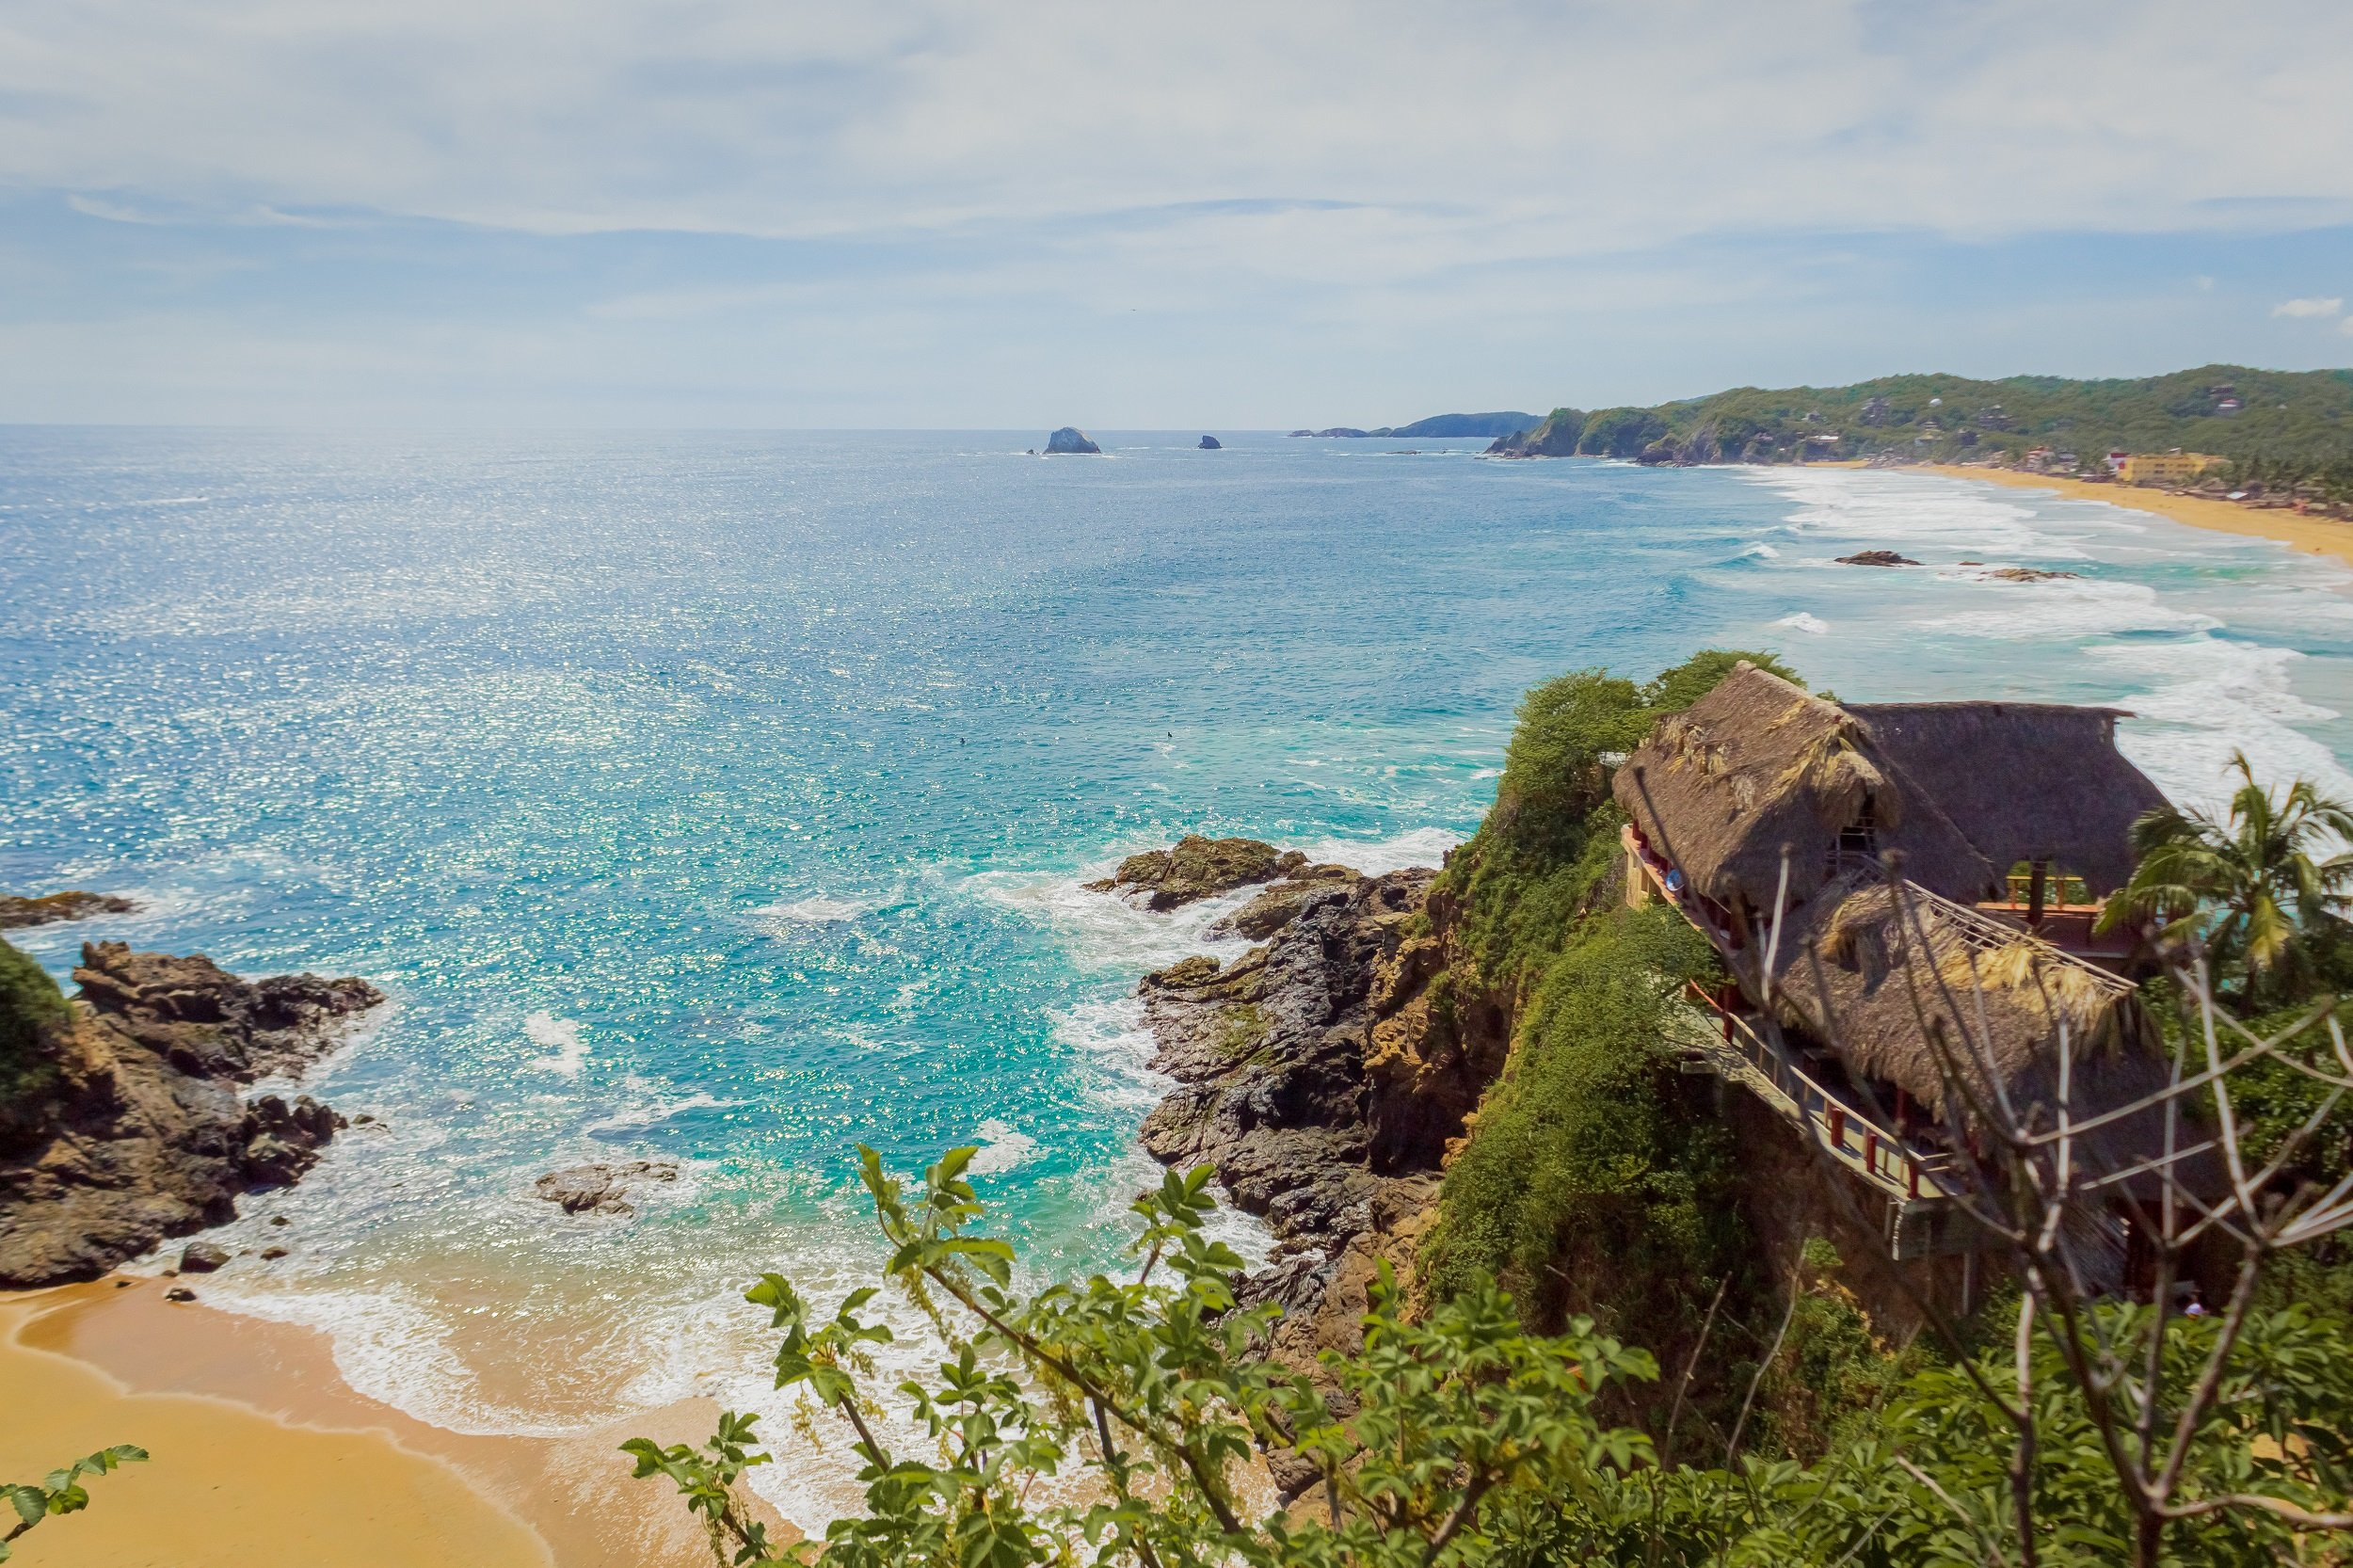 Zipolite-on-the-6-day-highlights-of-huatulco-surrounding-package-tour